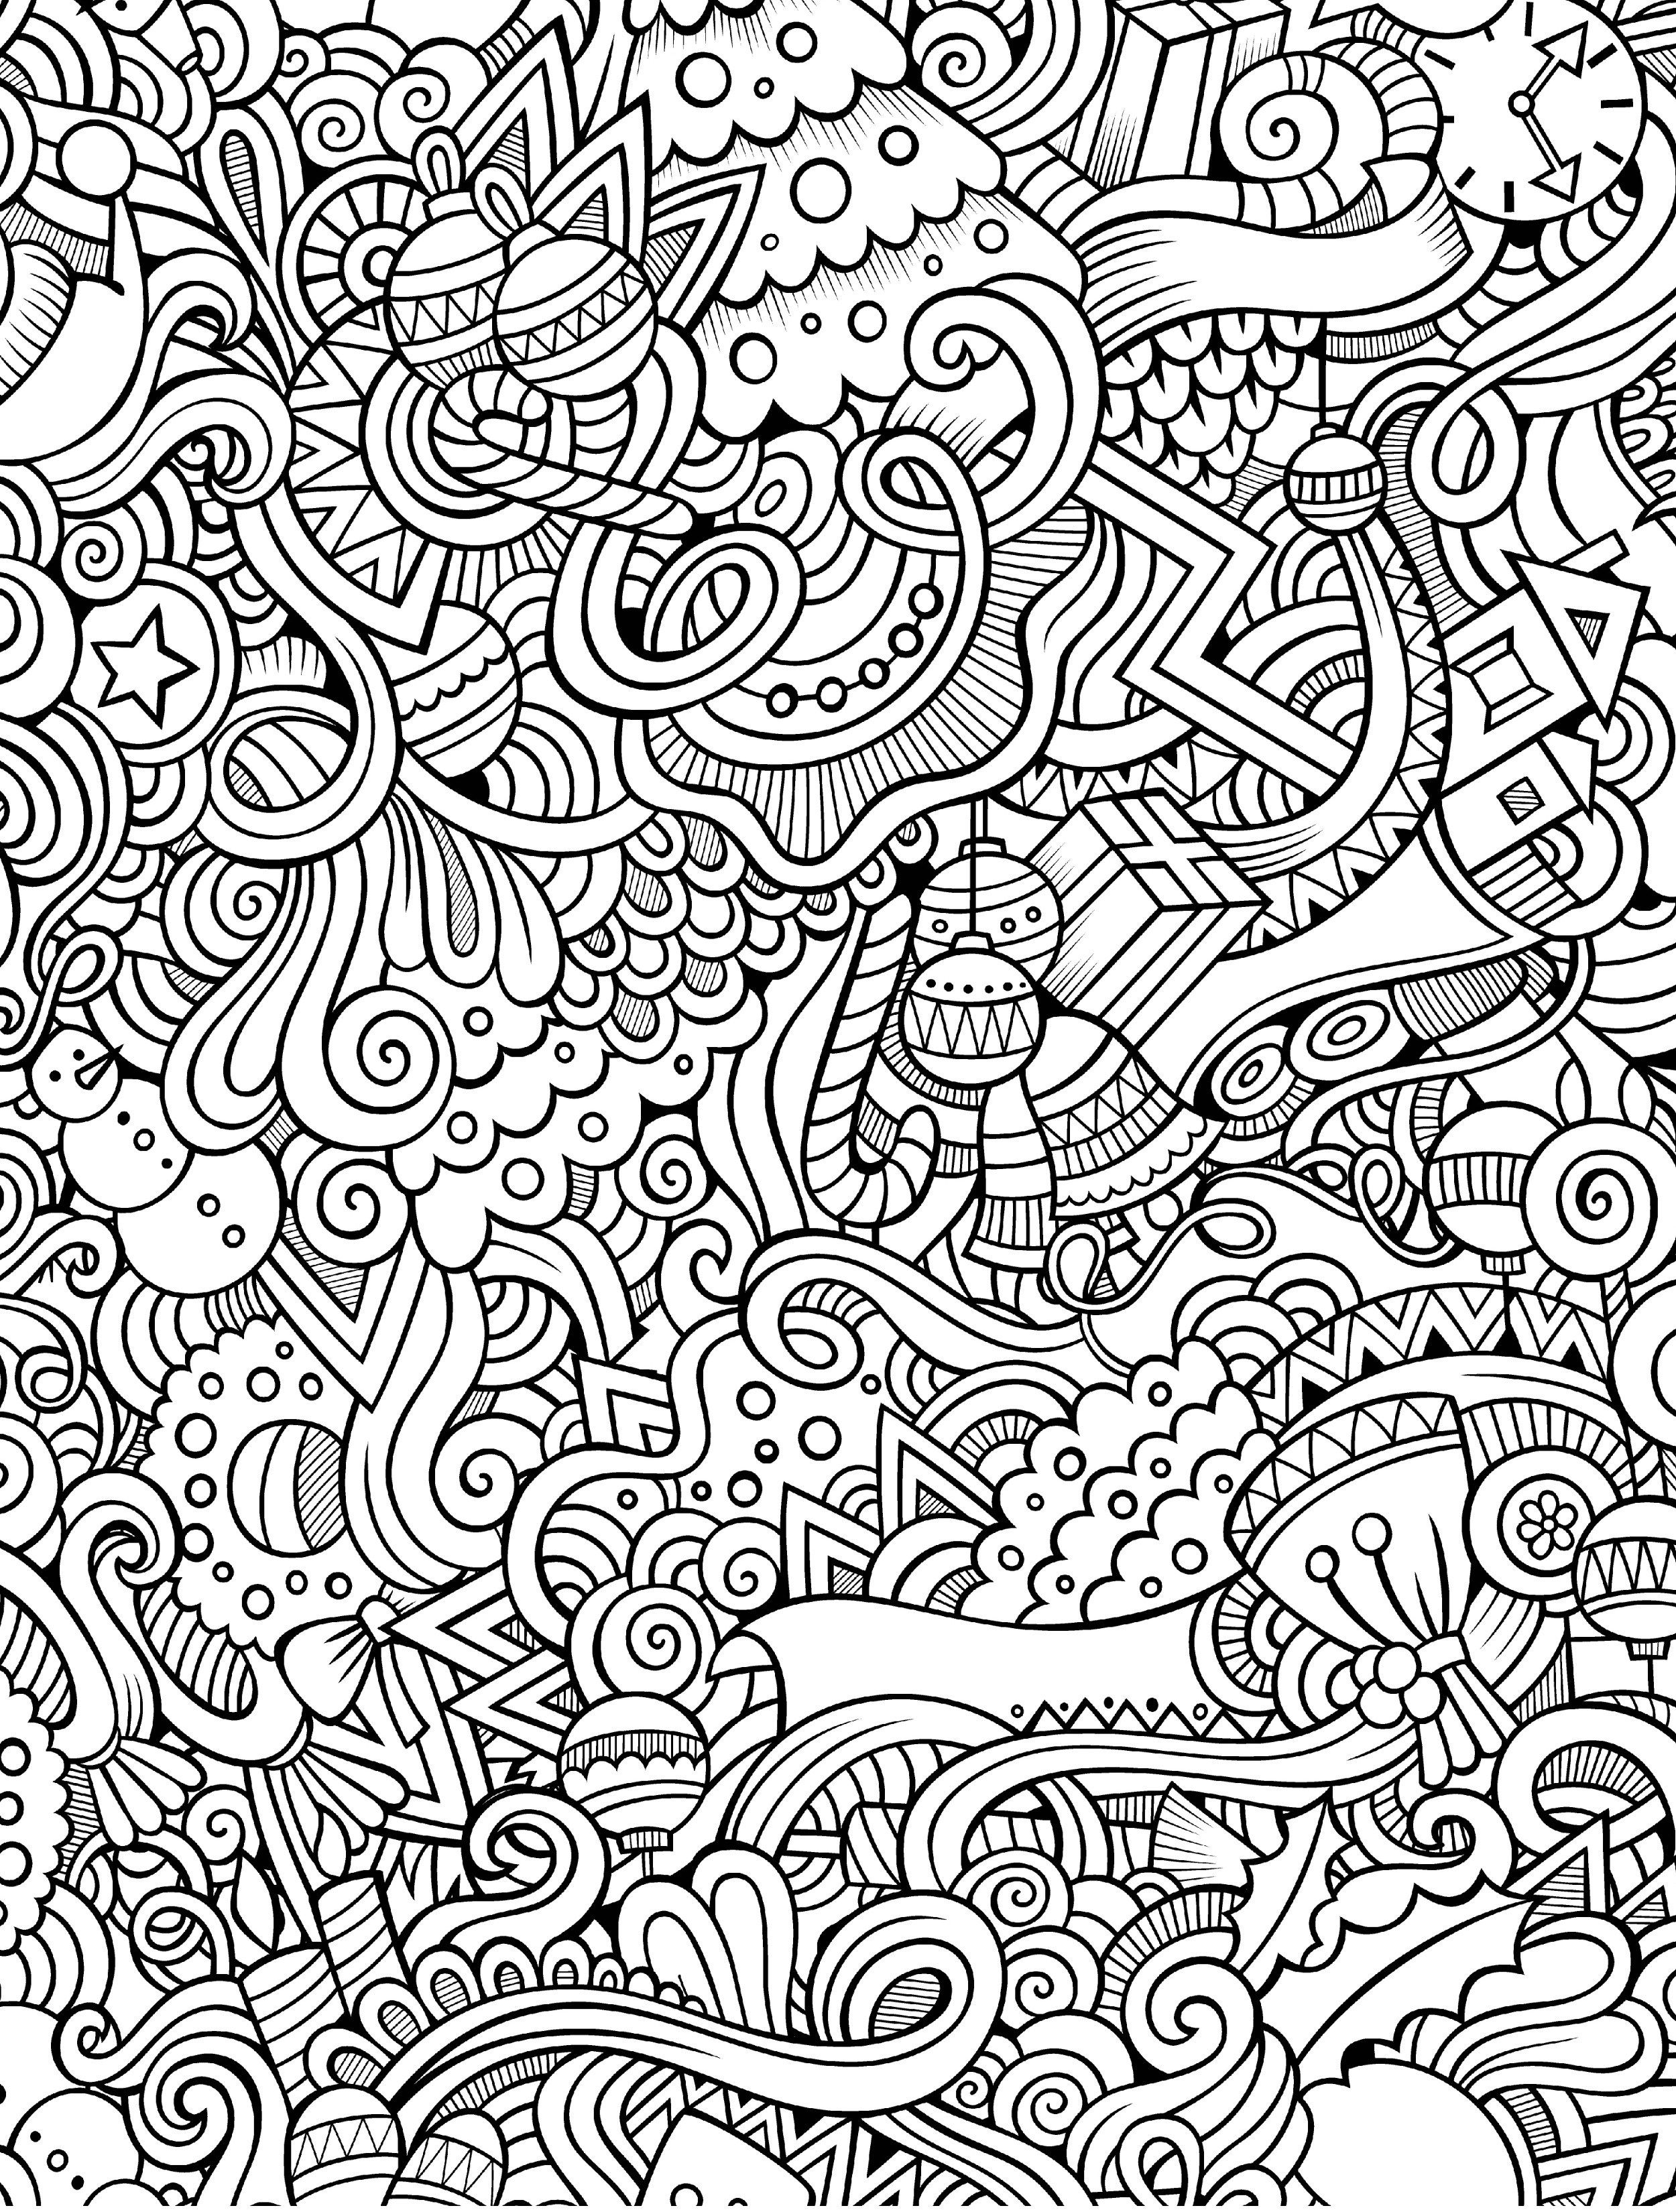 10 free printable holiday adult coloring pages   black and